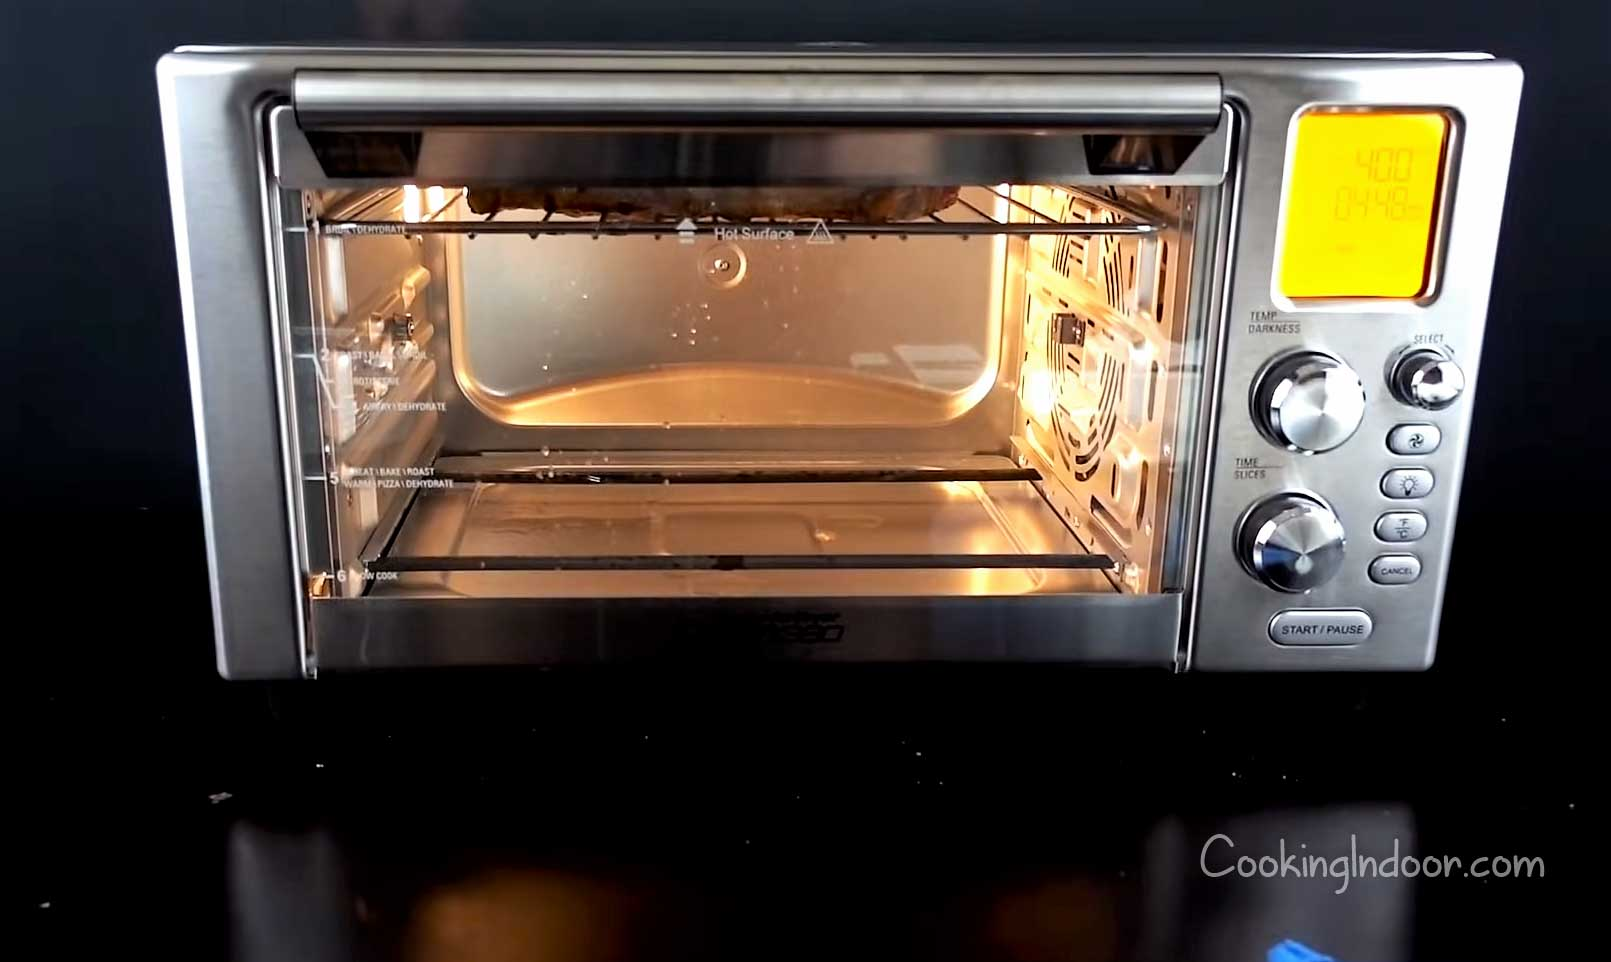 Best Emerson toaster oven